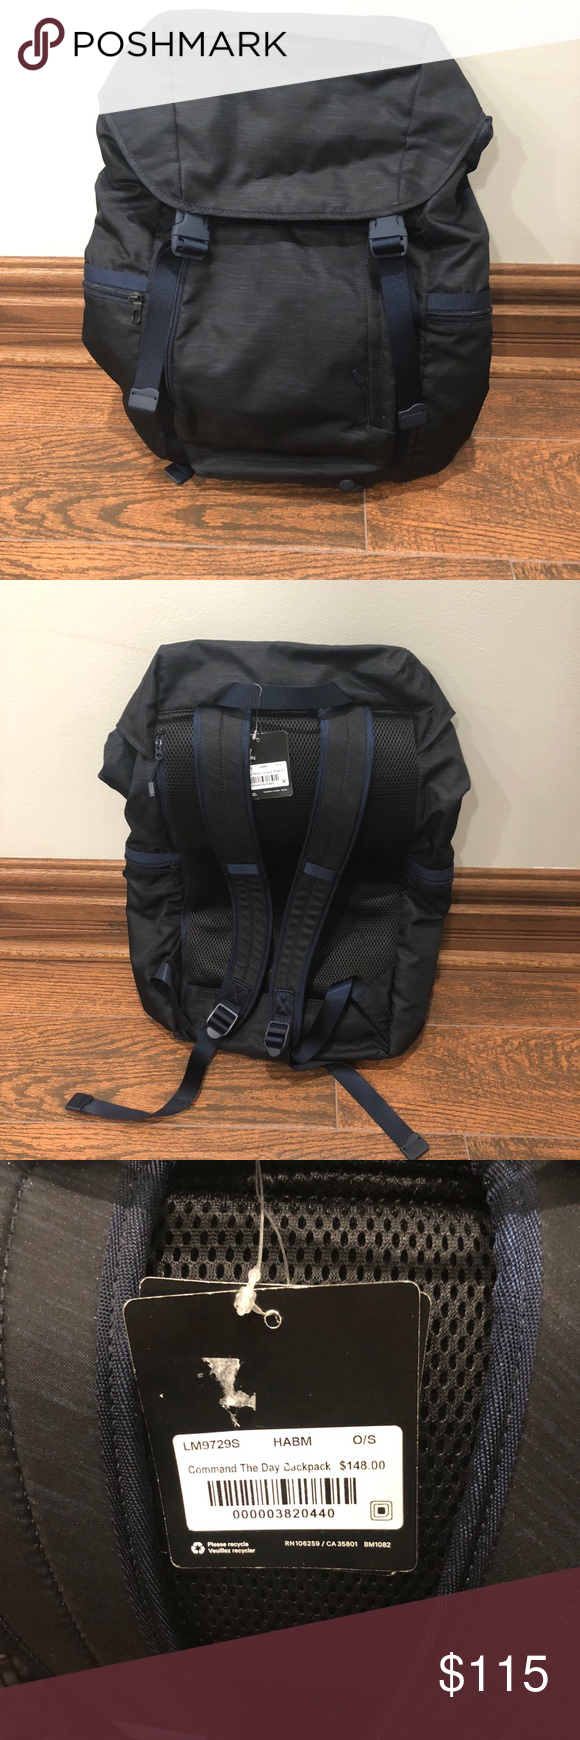 e8b99b30d5b Lululemon Command the Day Backpack Brand new with tags Lululemon men's  command the day backpack. Black with blue details. MSRP $148 lululemon  athletica Bags ...